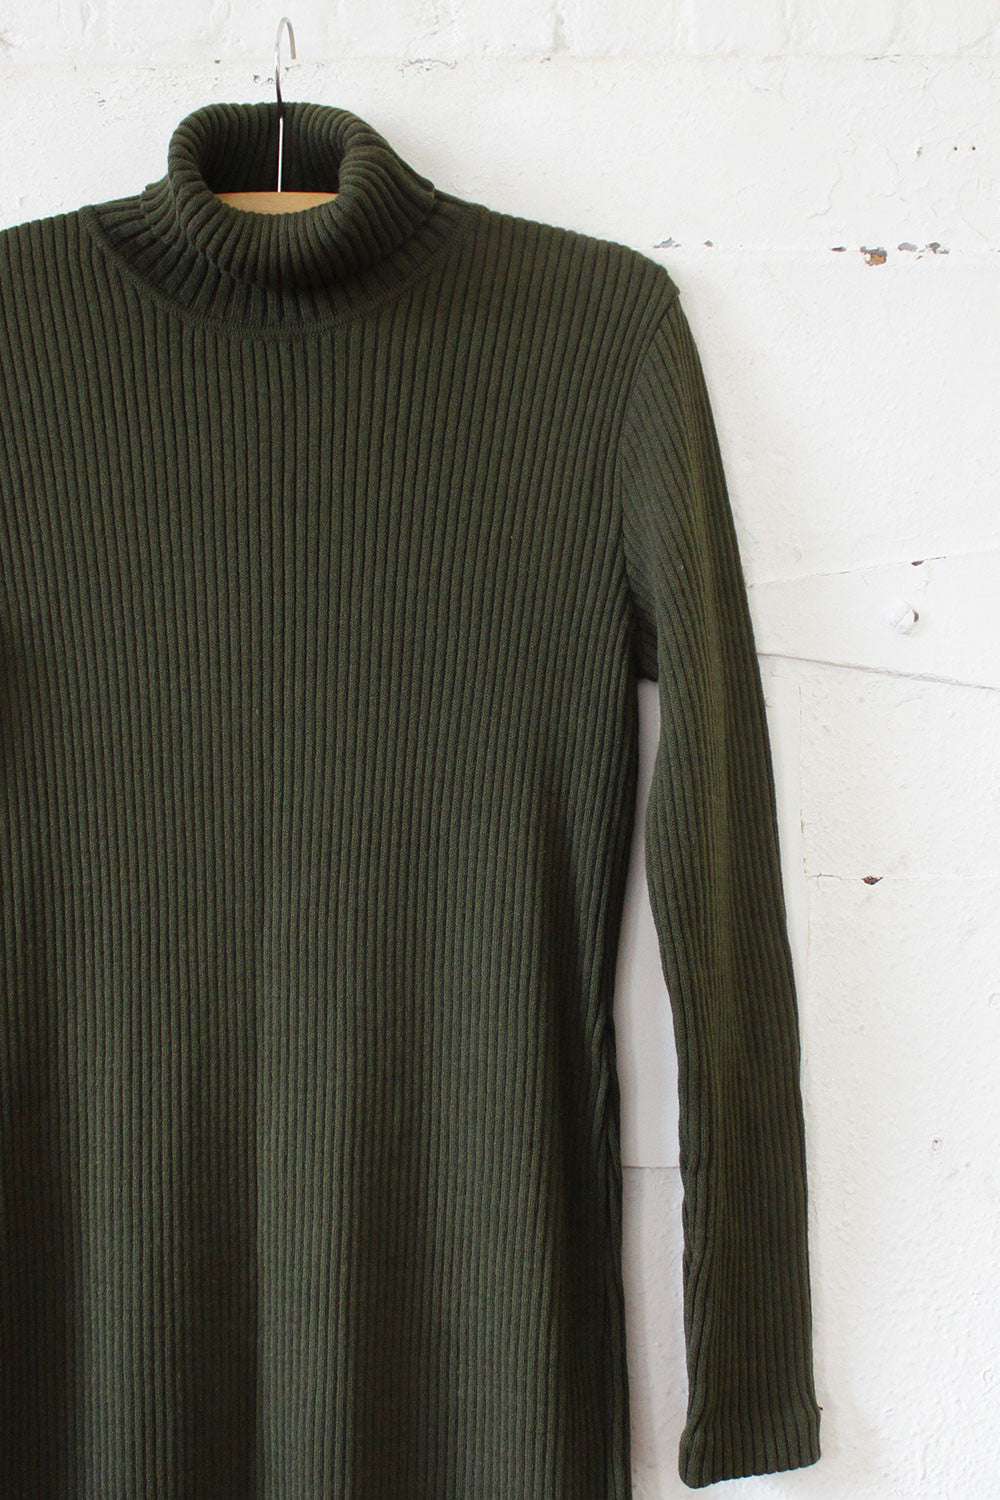 Olive Green Ribbed Sweater Dress M